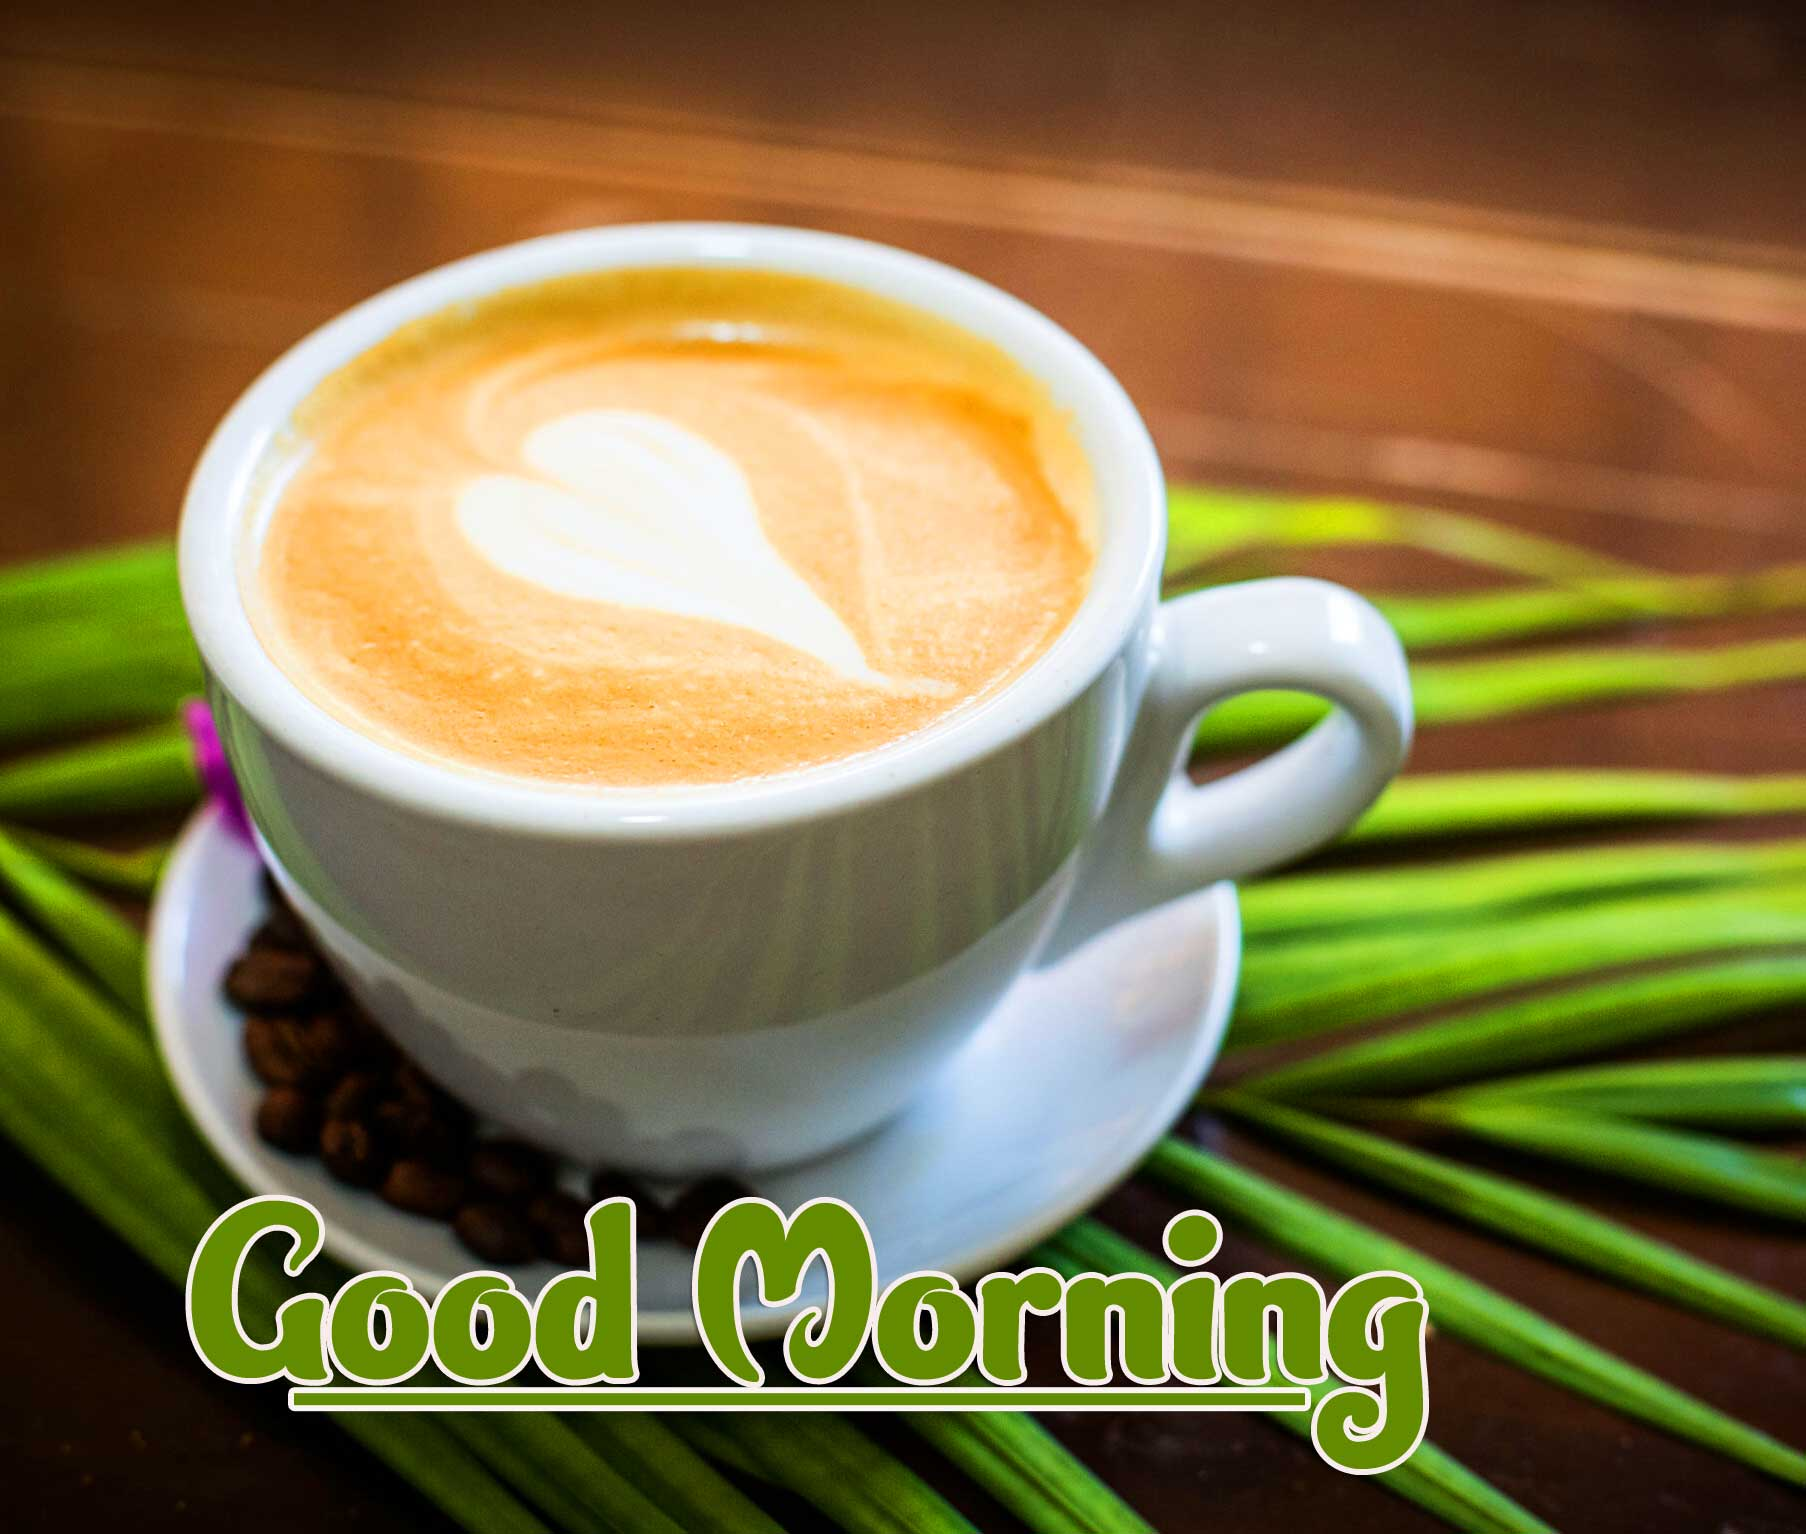 Best Good Morning Images Wallpaper pics With Coffe